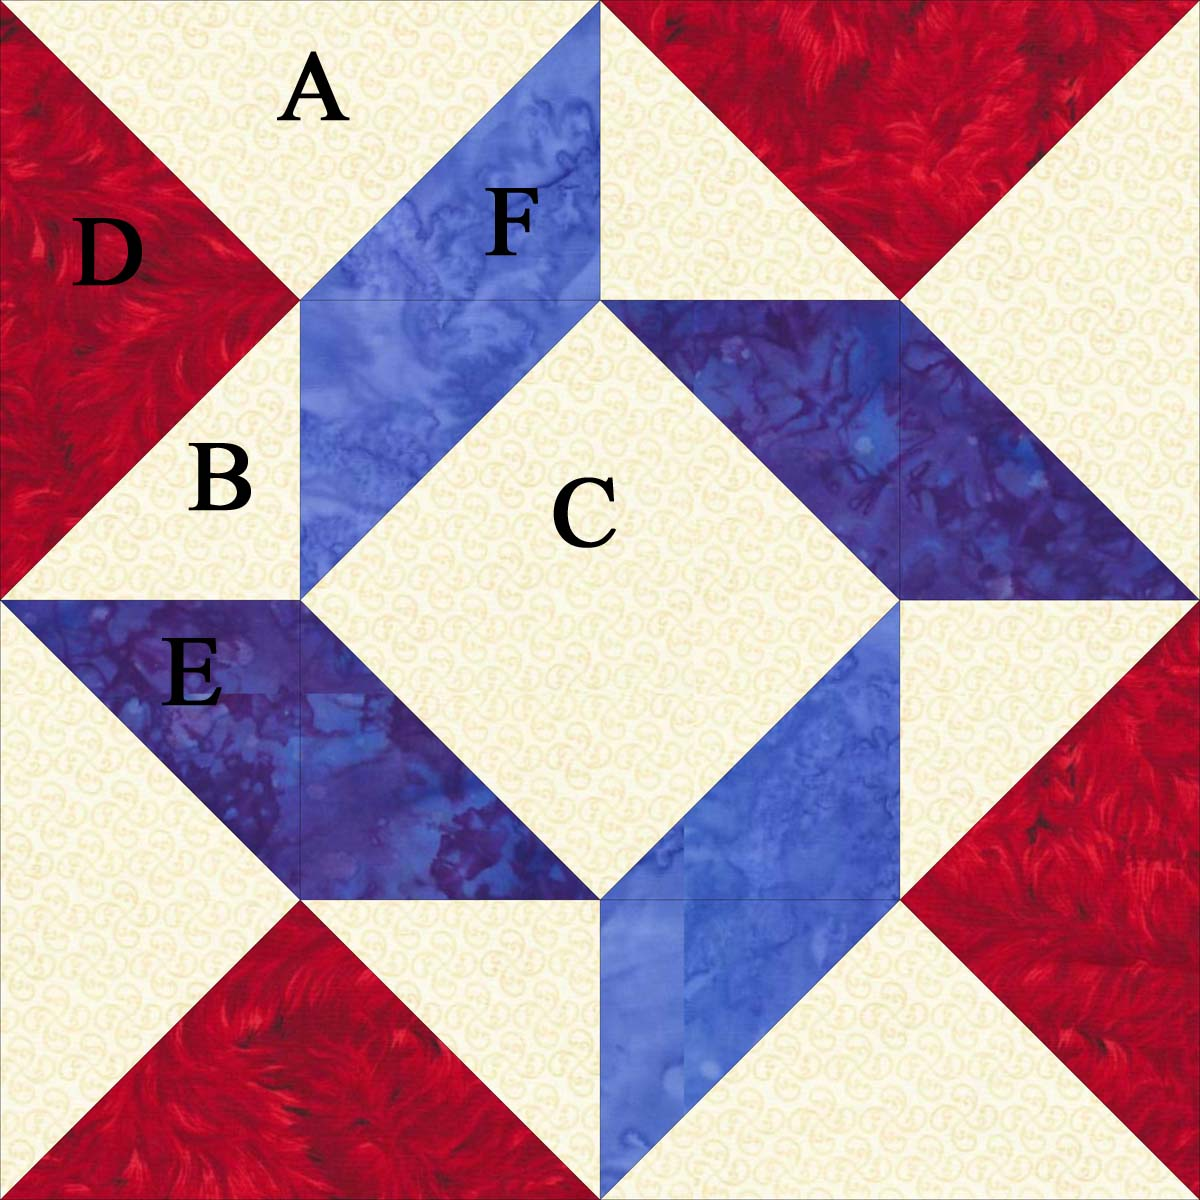 Quilt Patterns Quarter Square Triangles : Quarter Square Triangle Quilt Pattern images